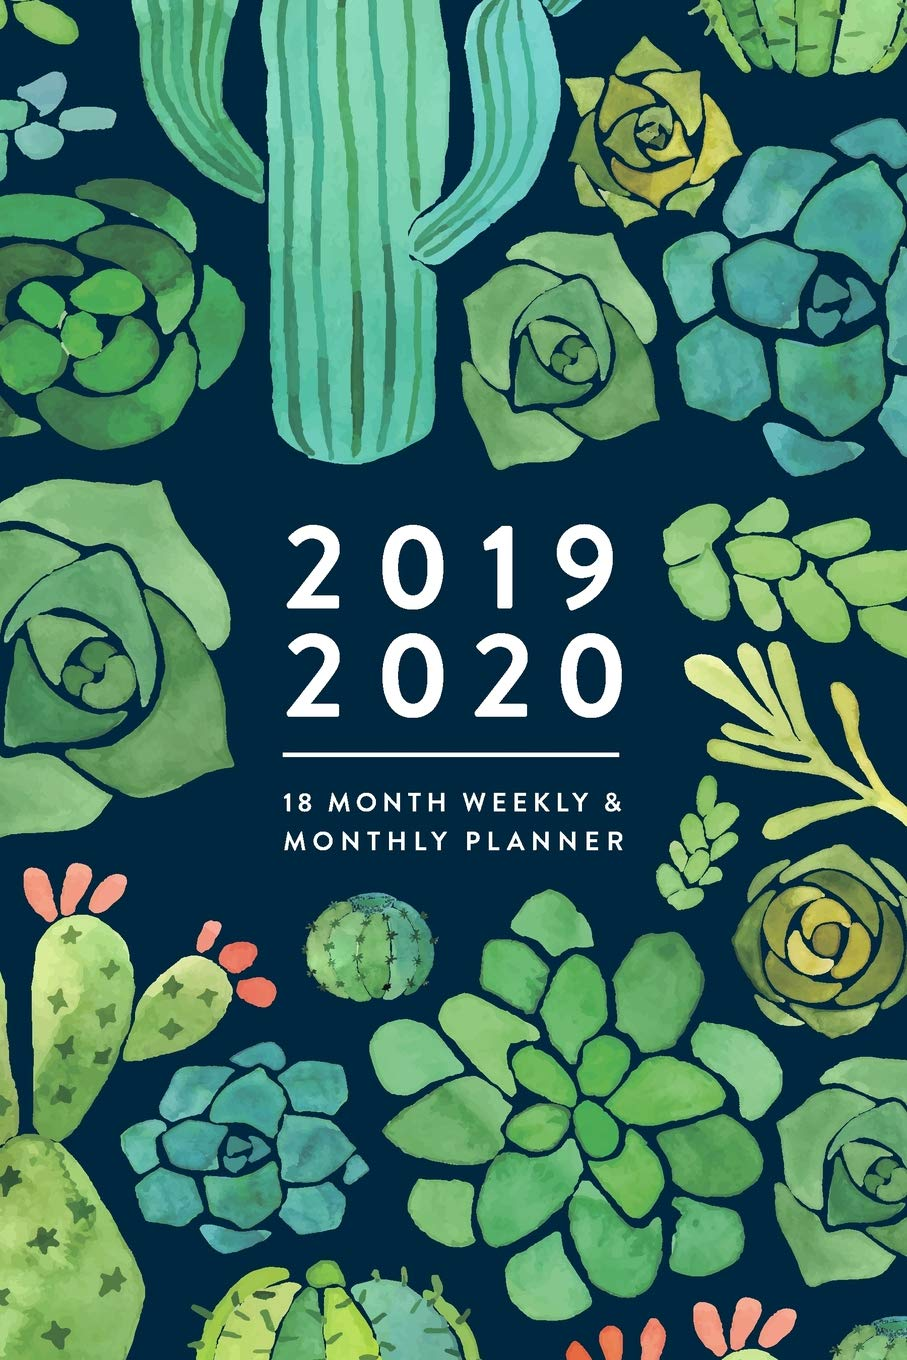 2019 2020 | 18 Month Weekly & Monthly Planner: January 2019 - June ...